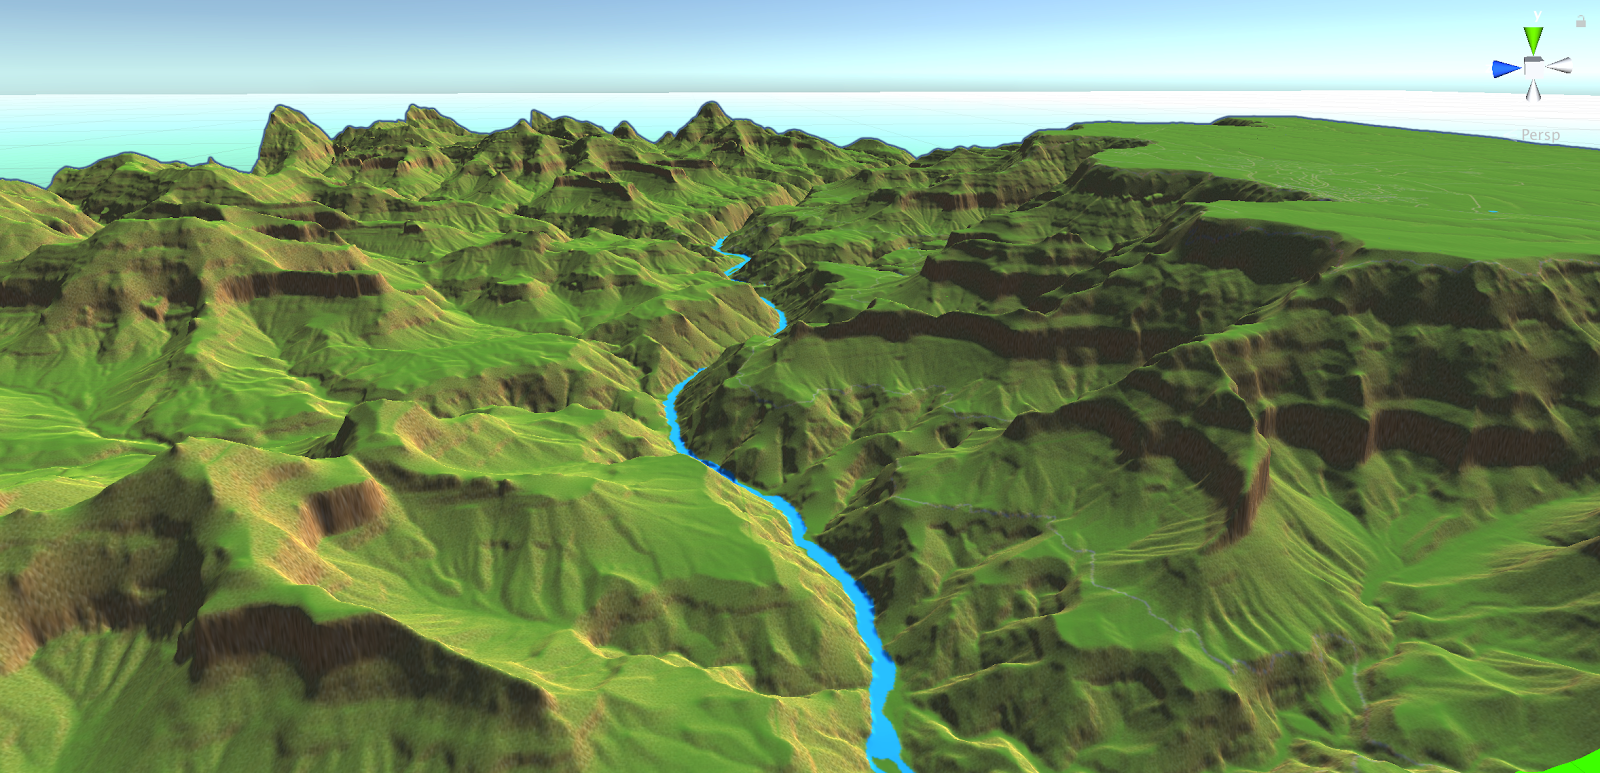 A Terrain Elevation image of the Grand Canyon